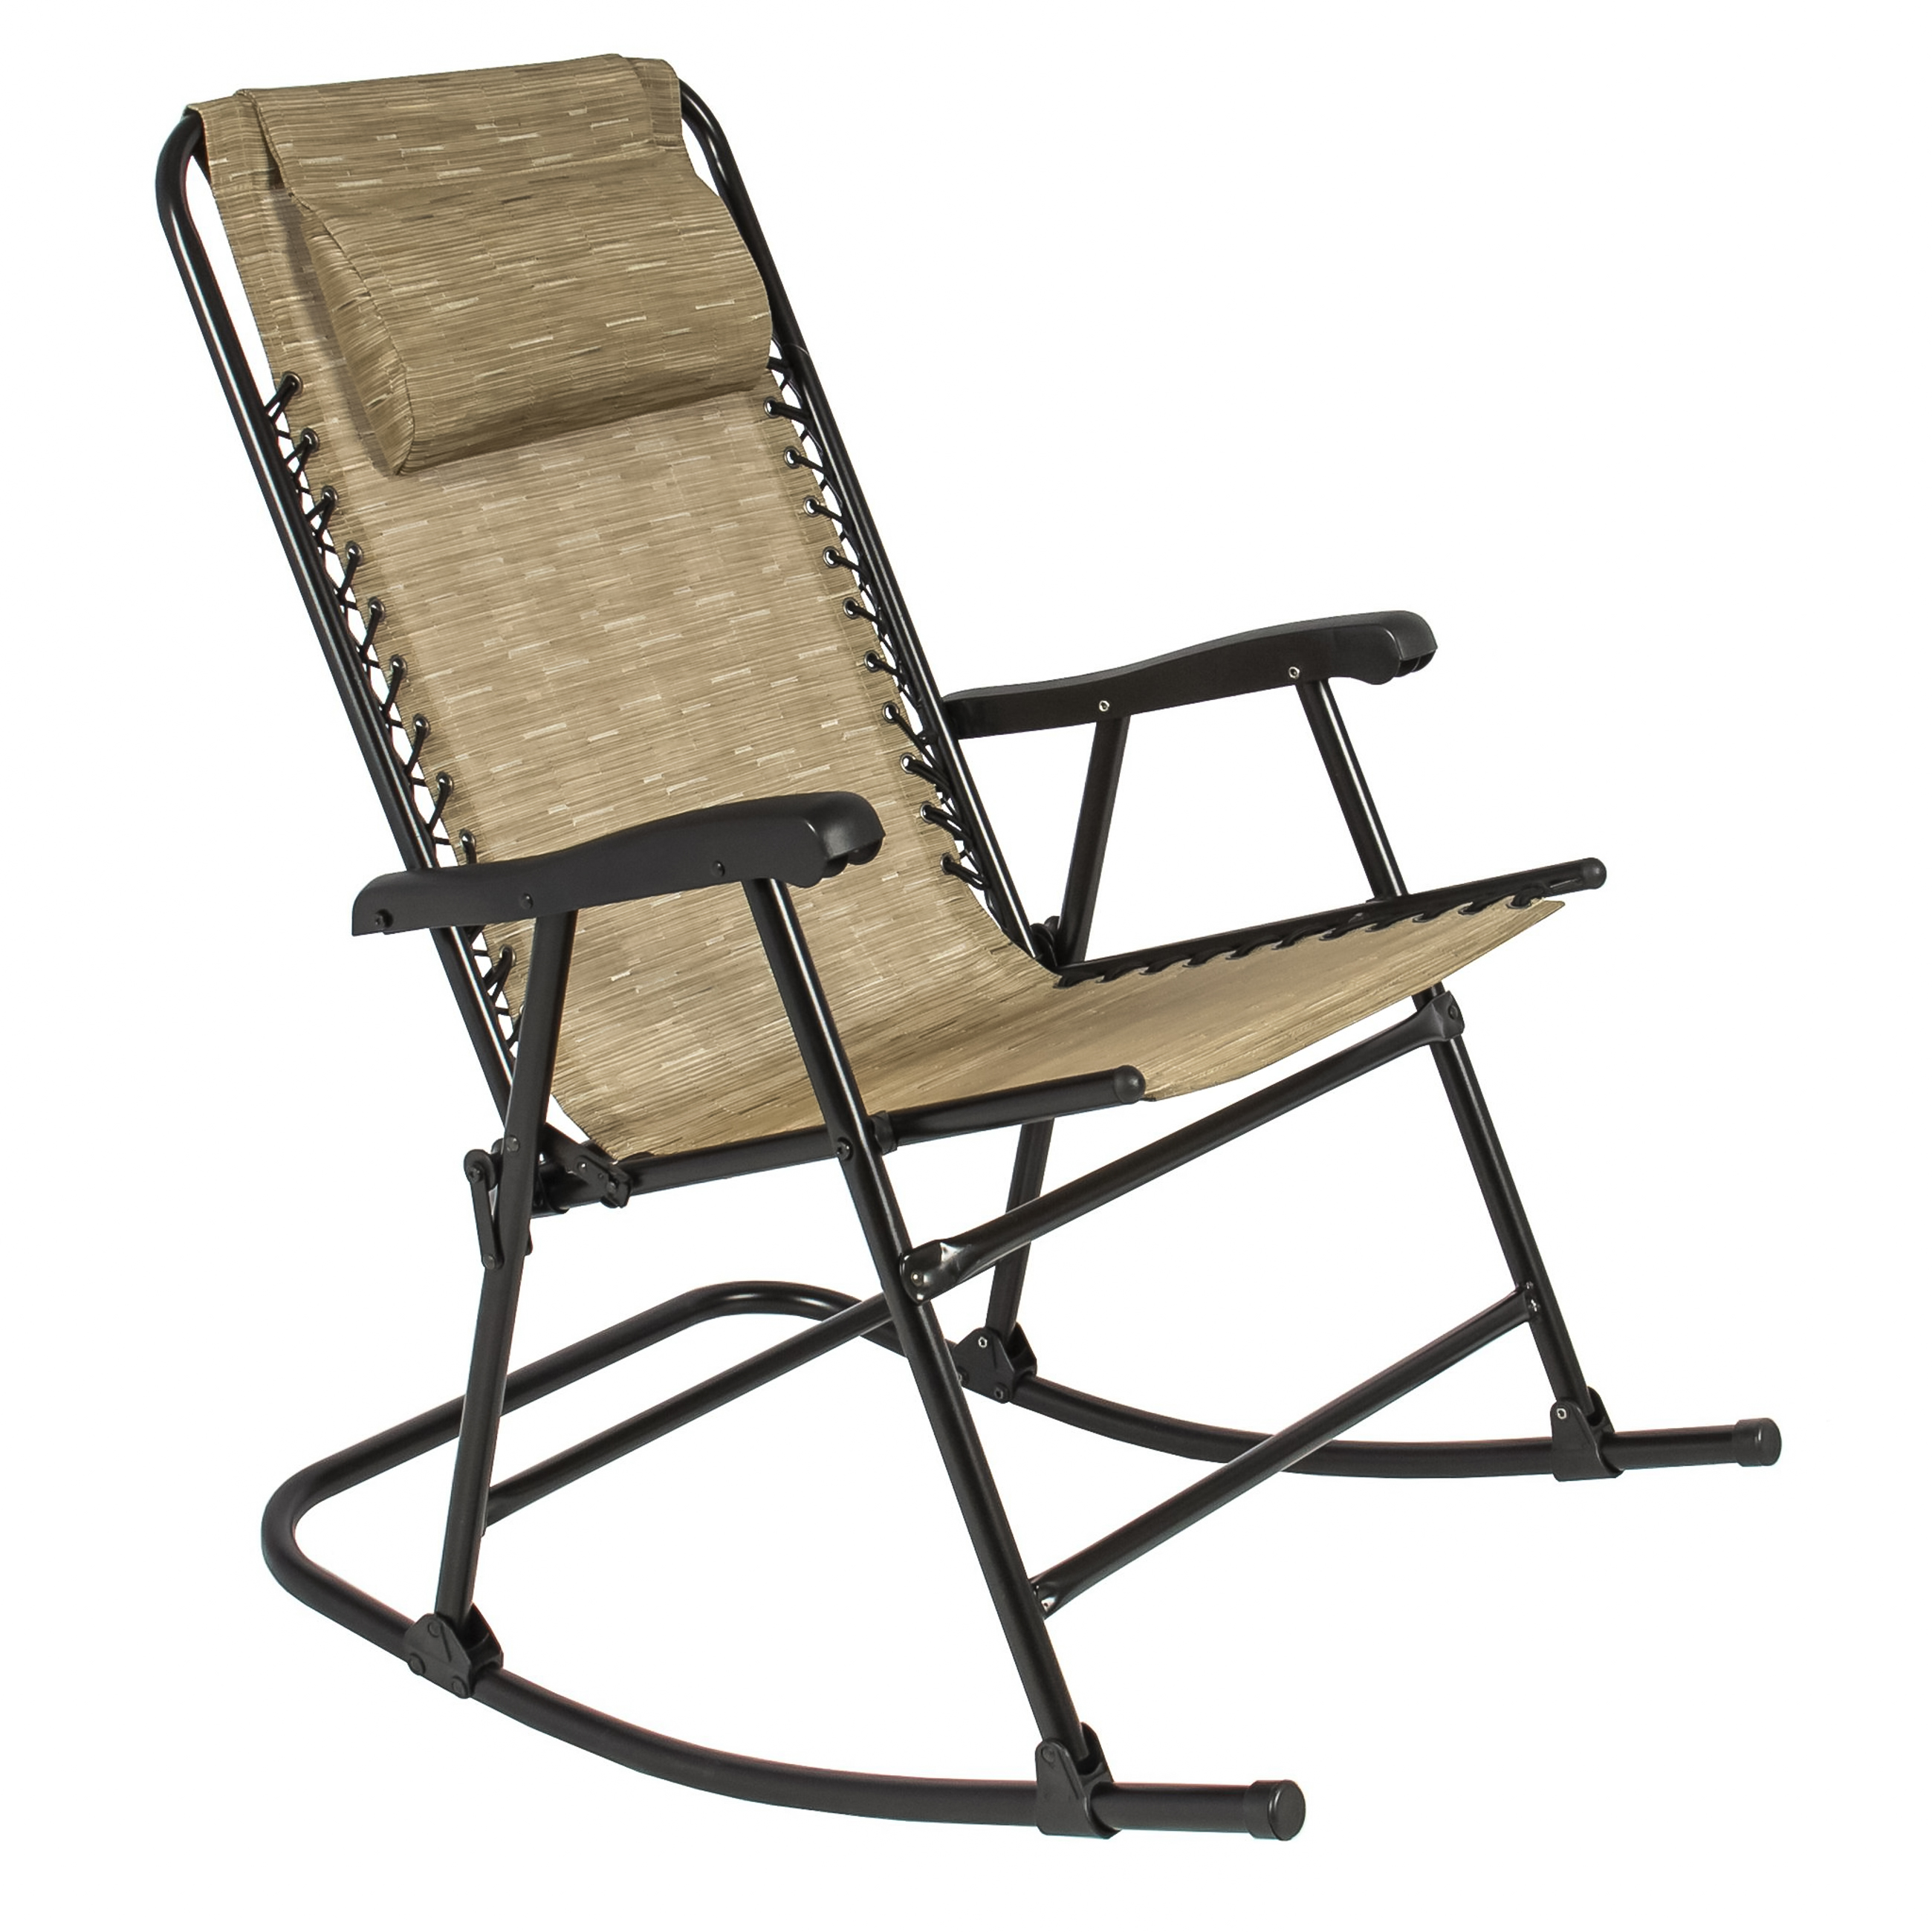 foldable rocking chair how to make a mat best choice products zero gravity patio recliner lounge w headrest pillow beige walmart com